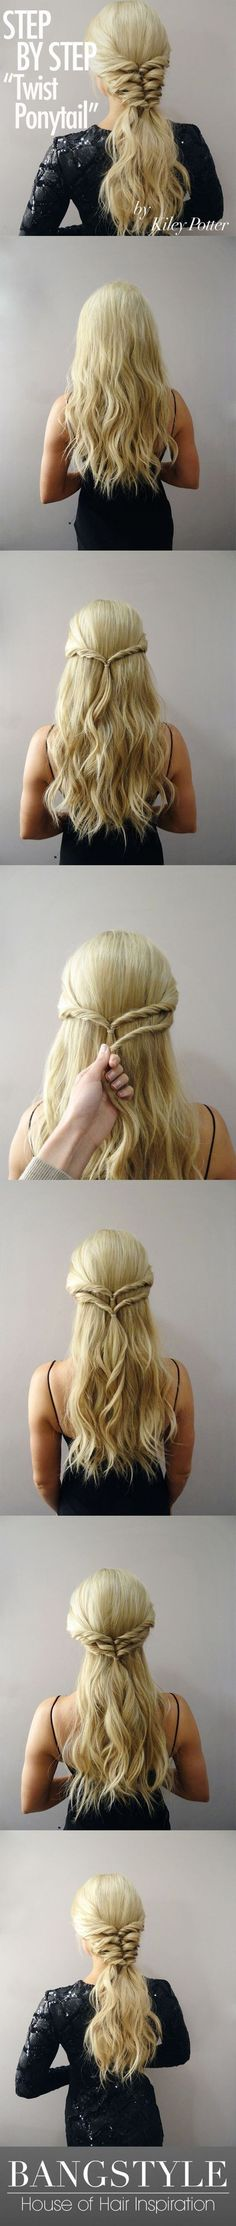 You may wear many different festival hair styles when you are going to your selection of summer music festivals. You may not have tried these styles before, but they are ... Read More